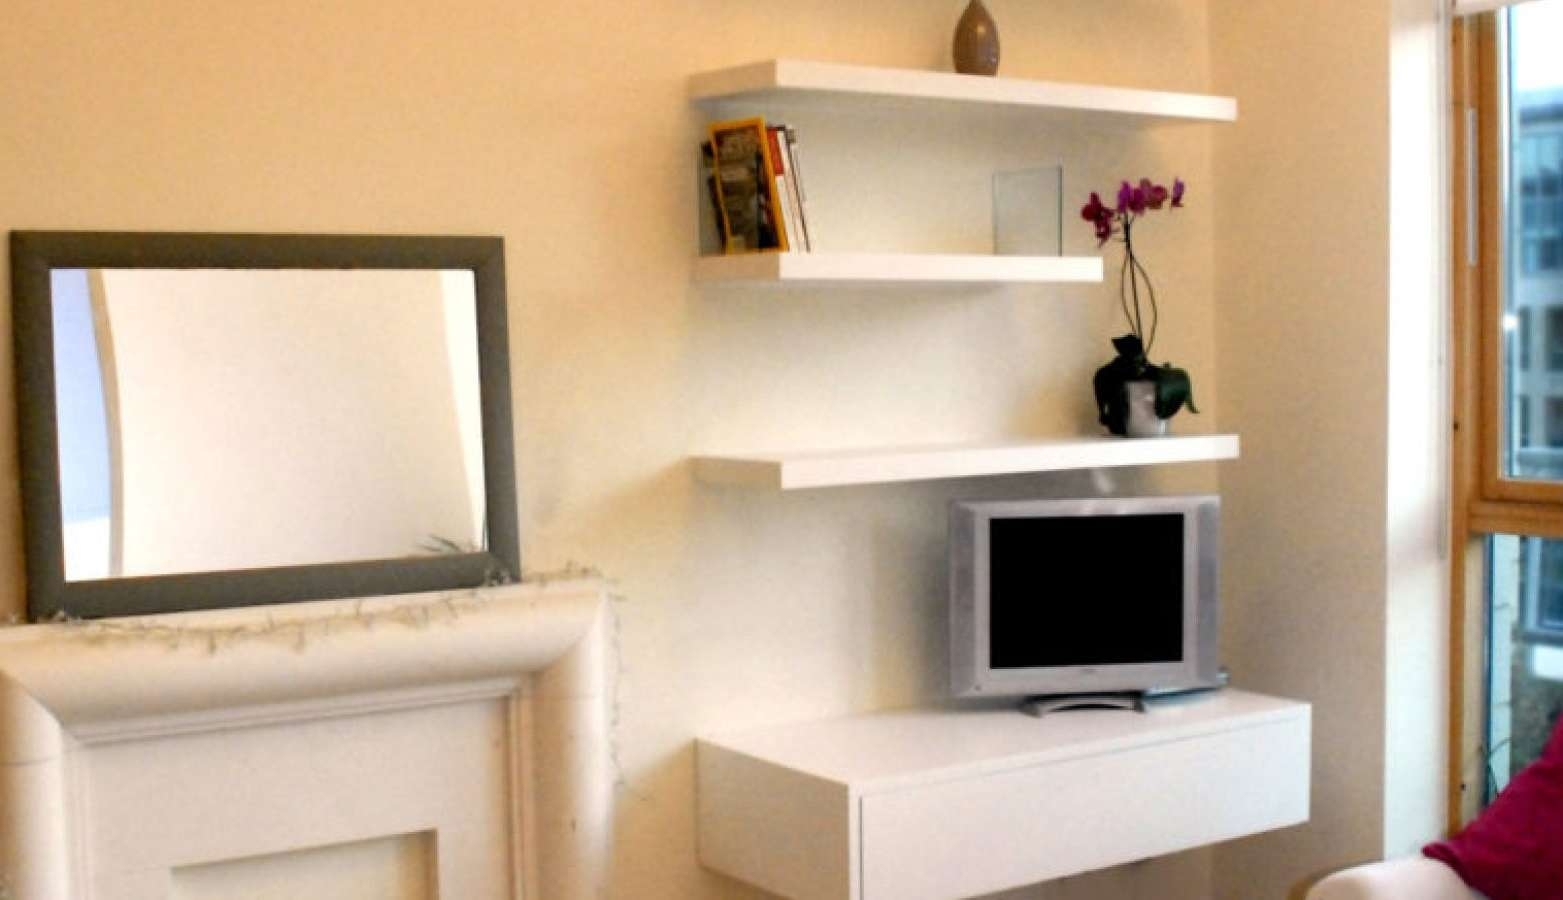 Shelving : 90 Single Shelf Tv Stand Awesome Awesome Single Shelf Pertaining To Single Shelf Tv Stands (View 10 of 15)